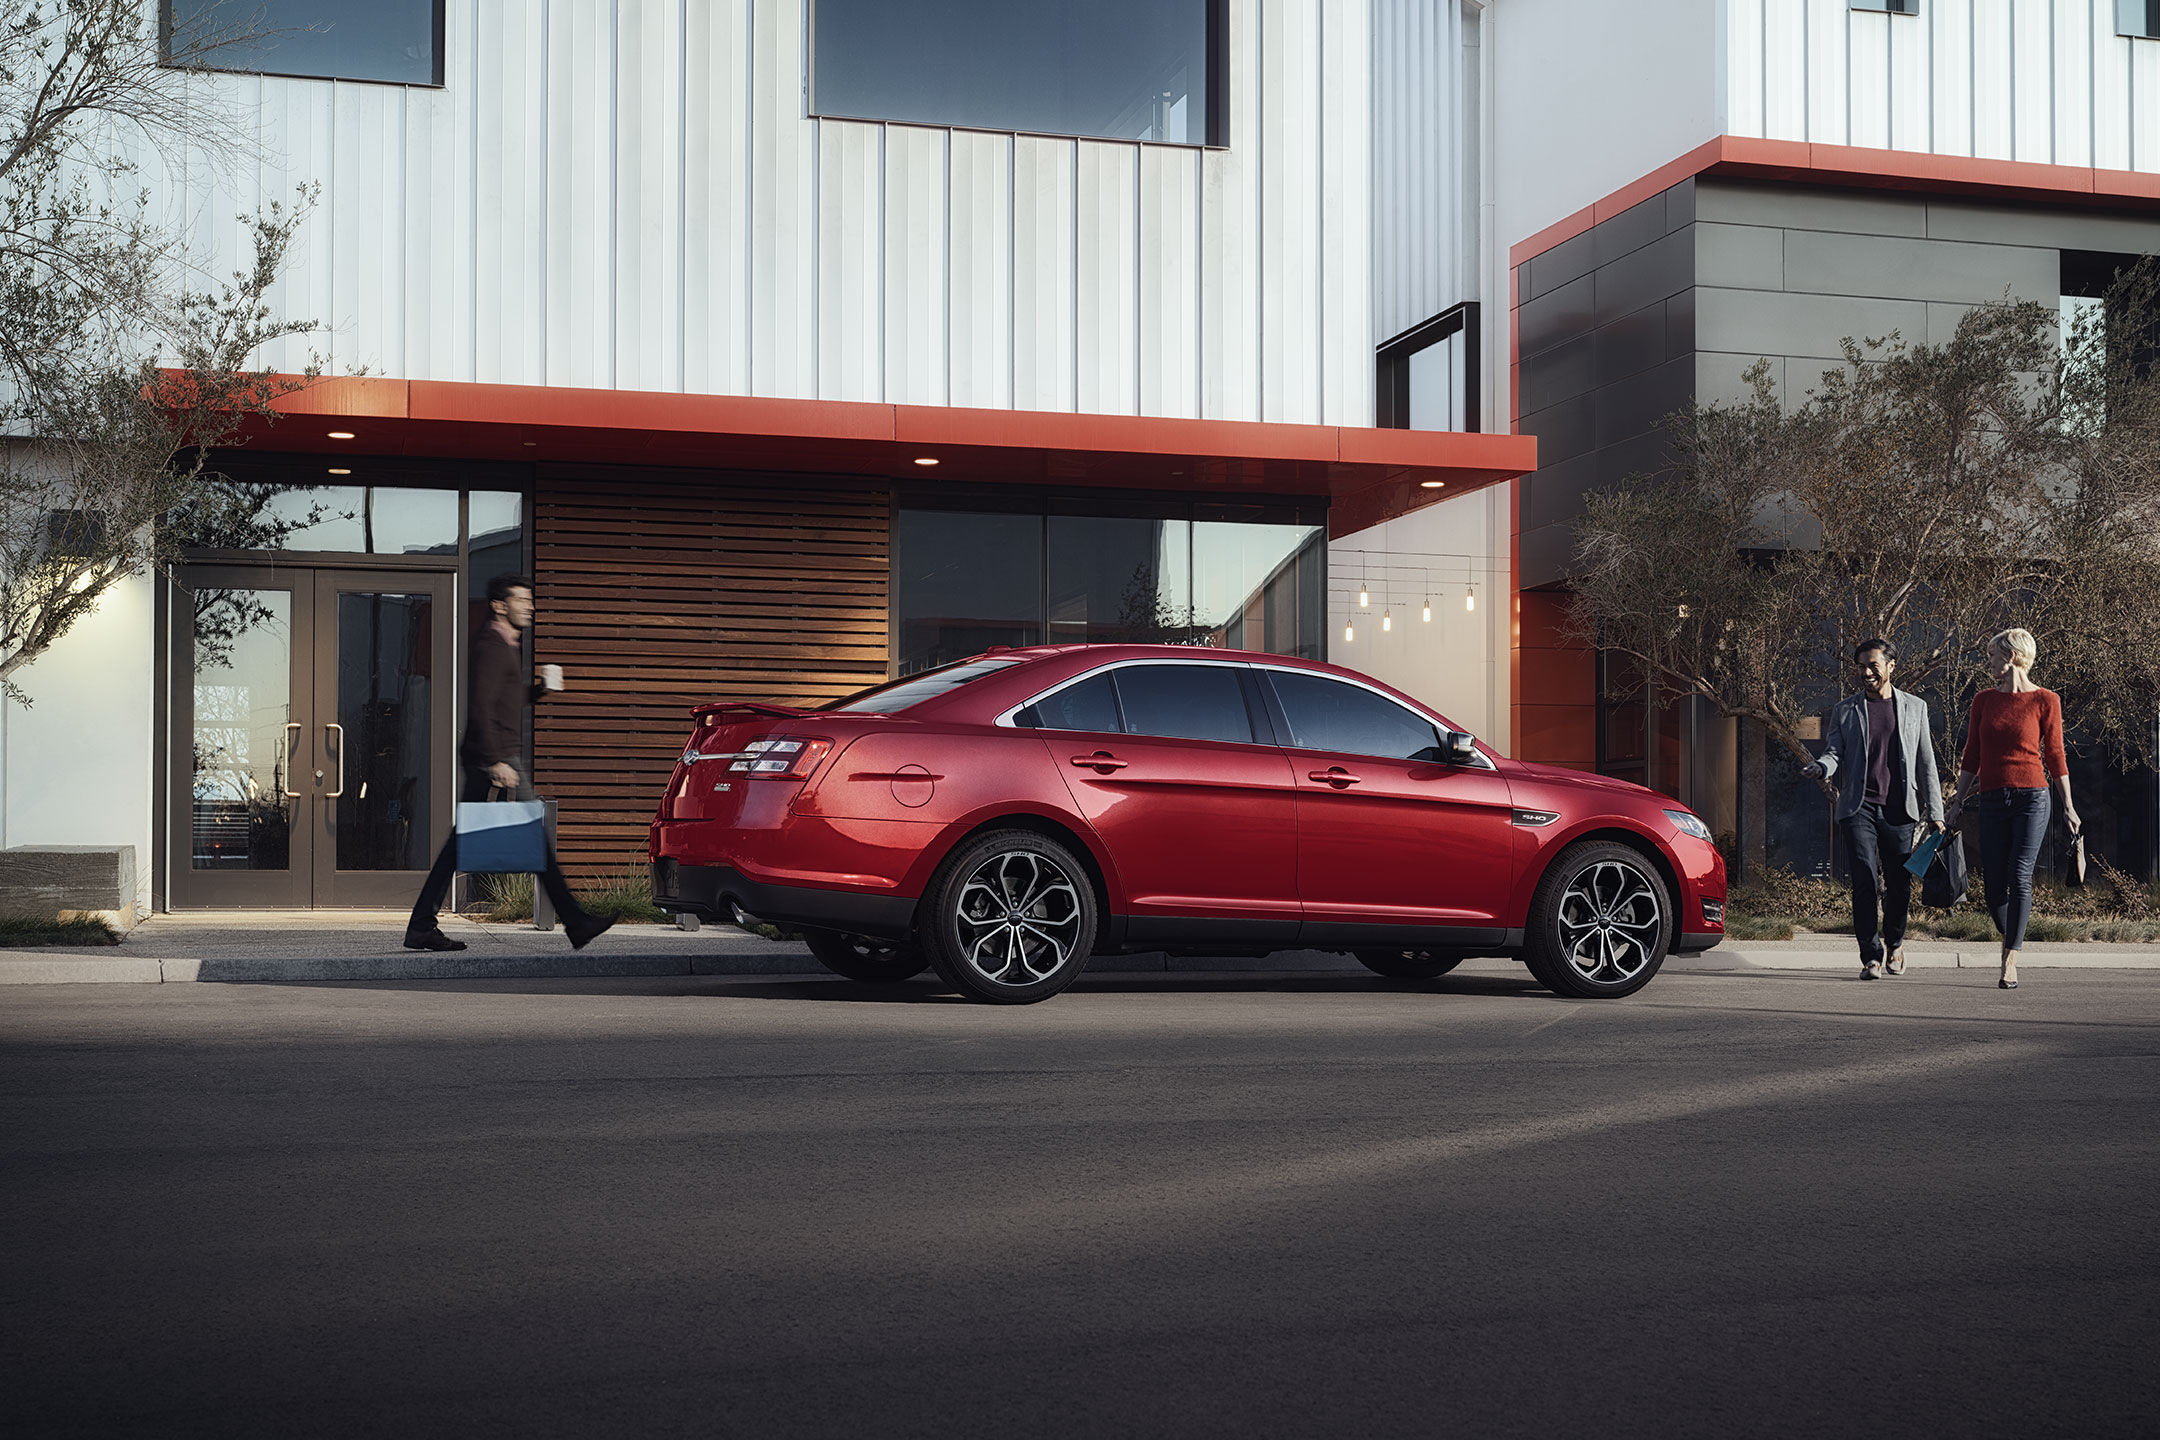 2016 Ford Taurus Sho >> 2017 Ford Taurus Overview - The News Wheel